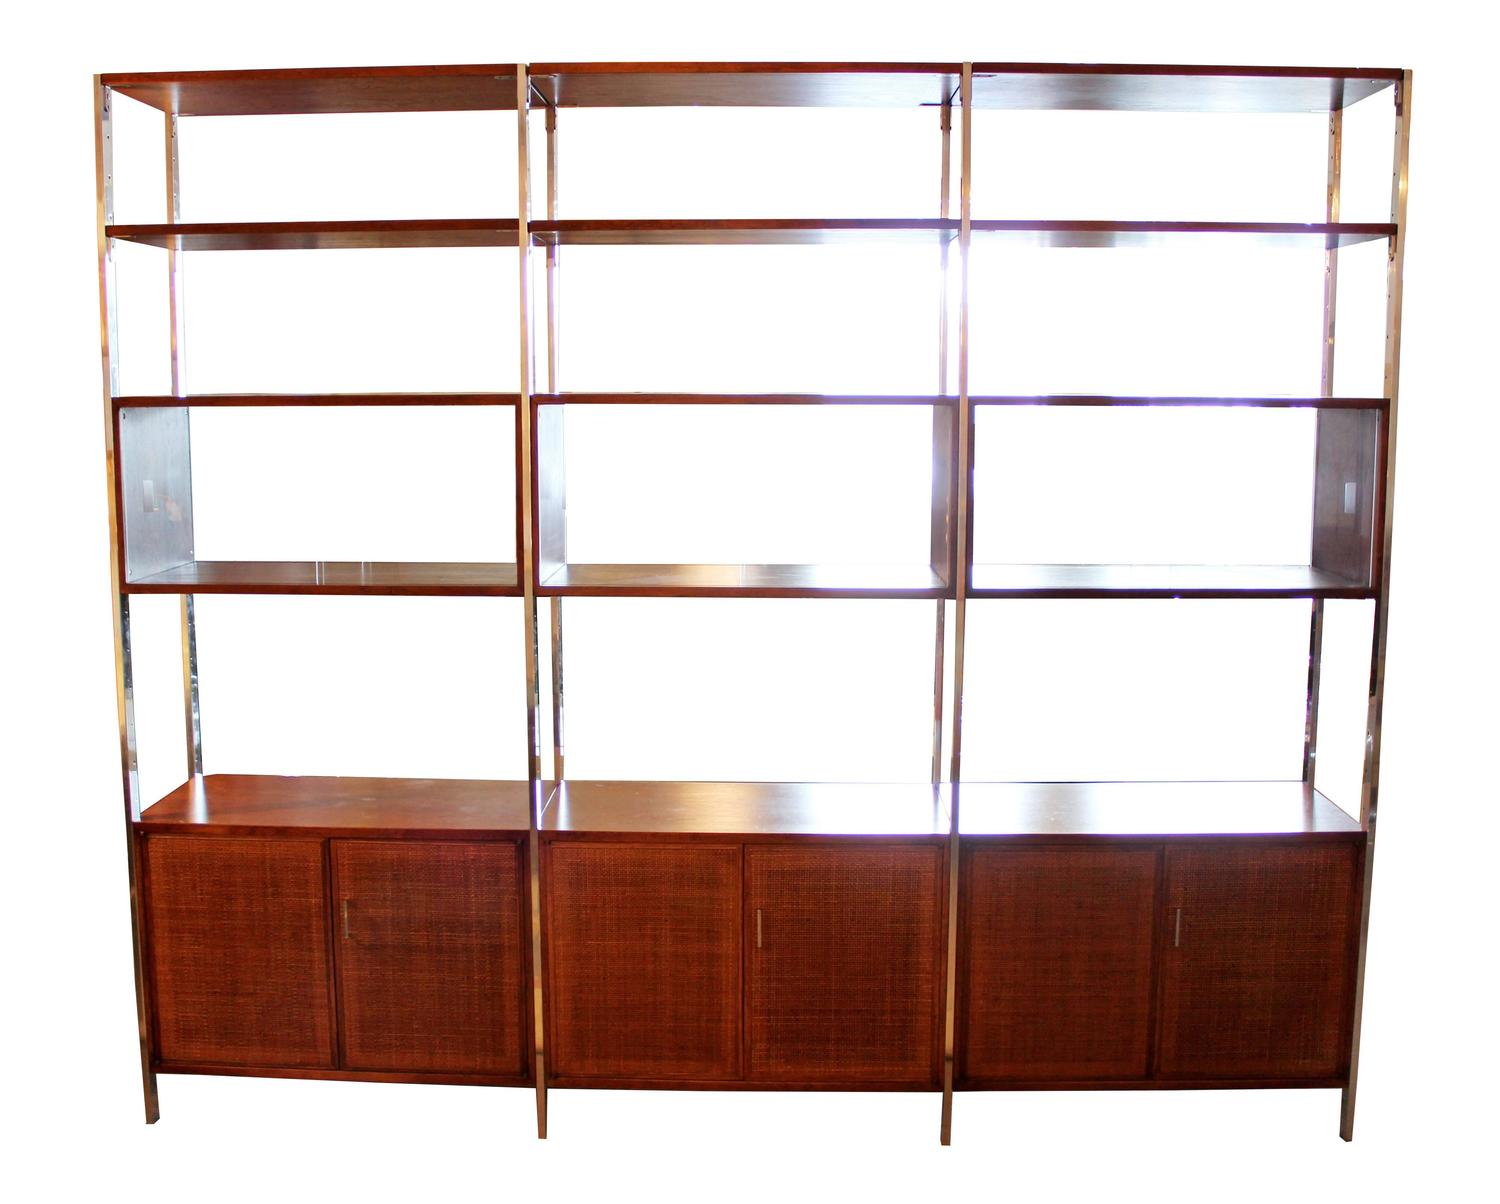 Founders credenza and shelving unit room divider walnut for Room divider storage